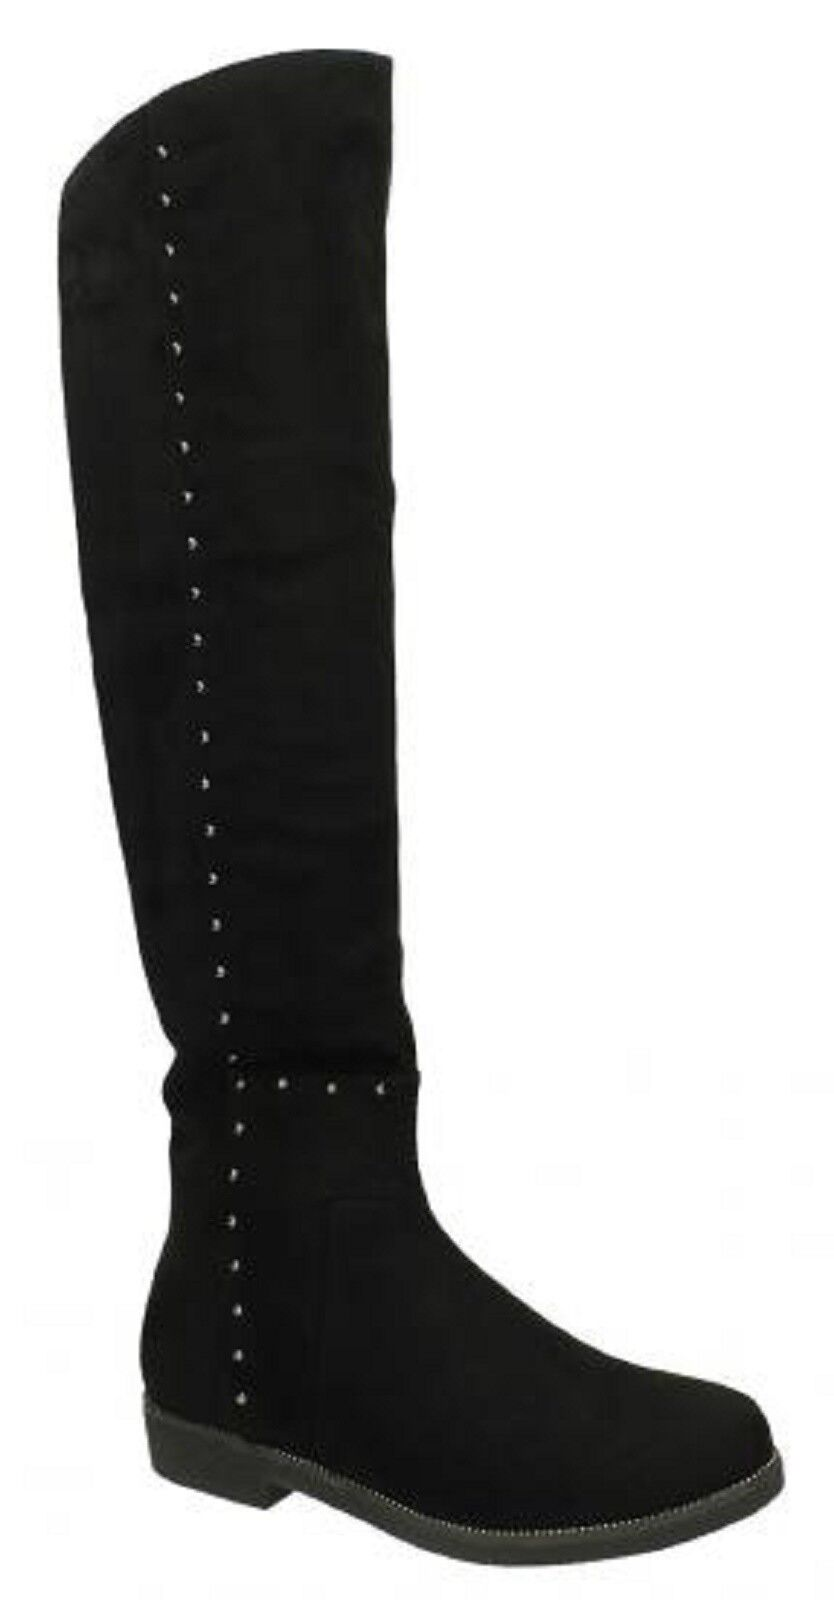 Ladies Black Microfibre Knee Length Zip Boots from Spot On F50308